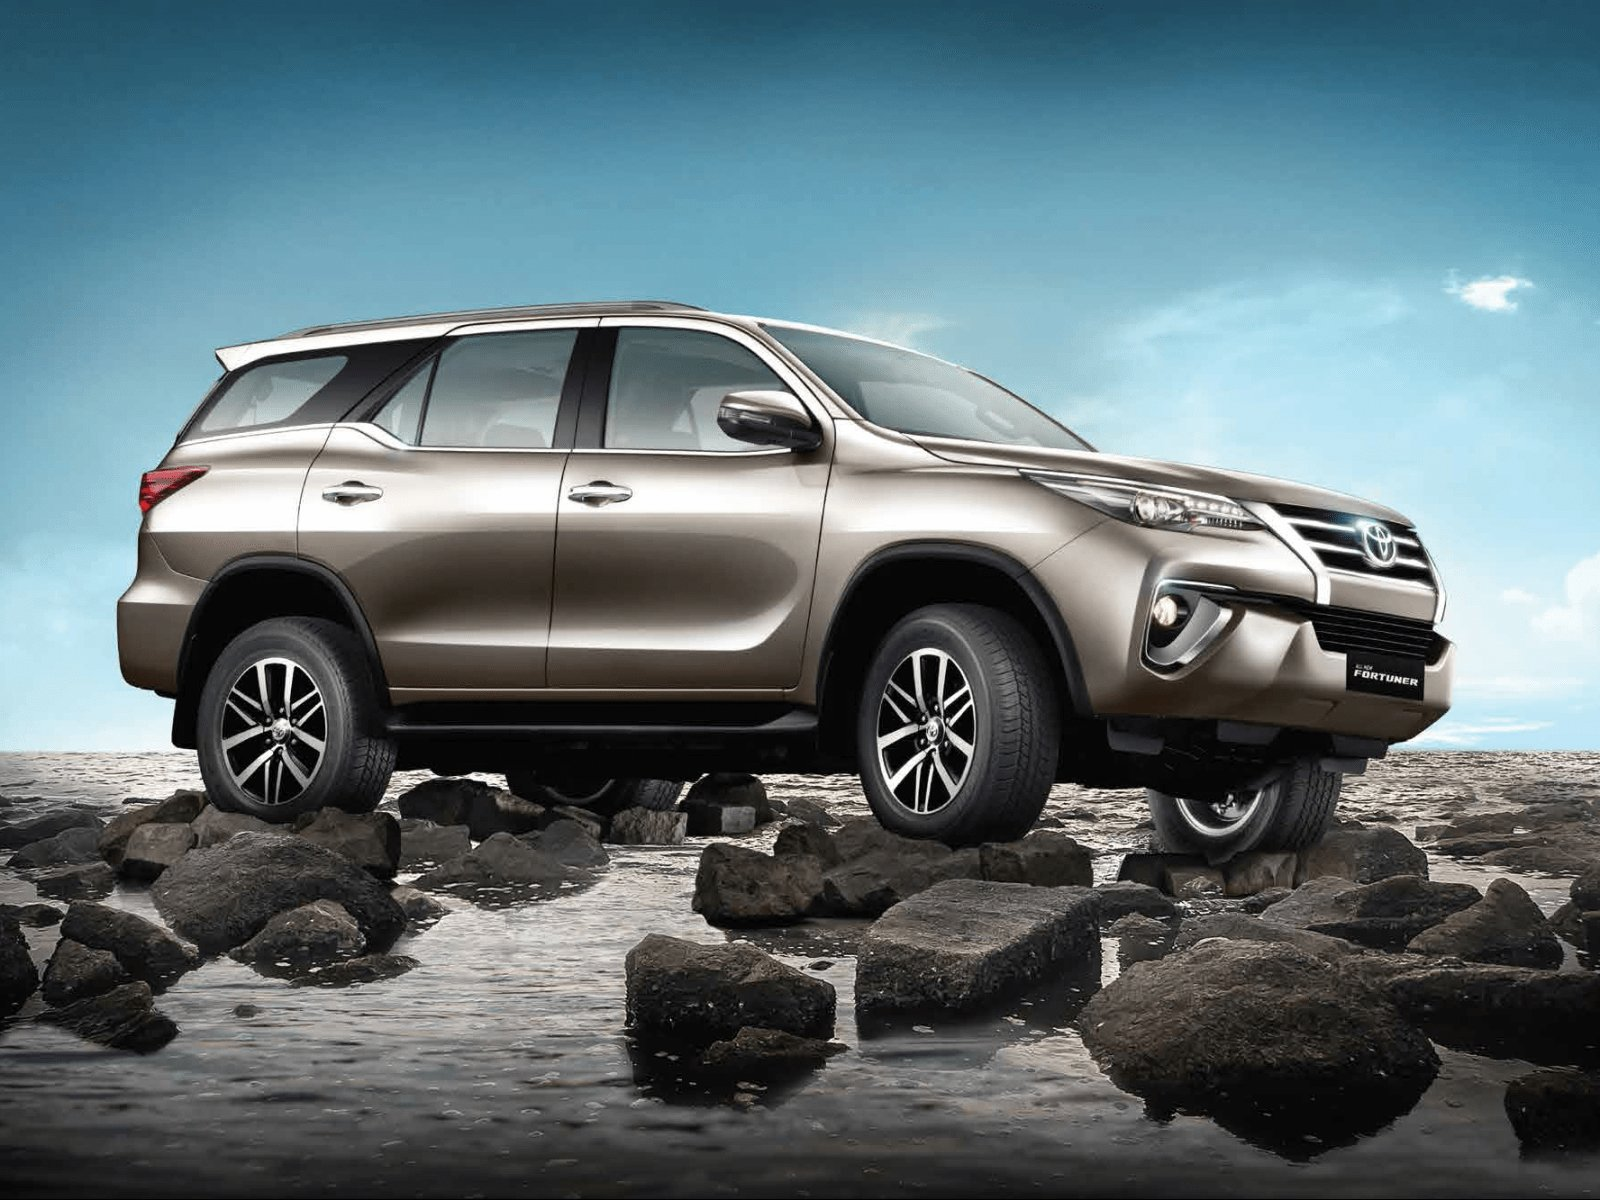 Latest Toyota Fortuner Wallpapers Free Download